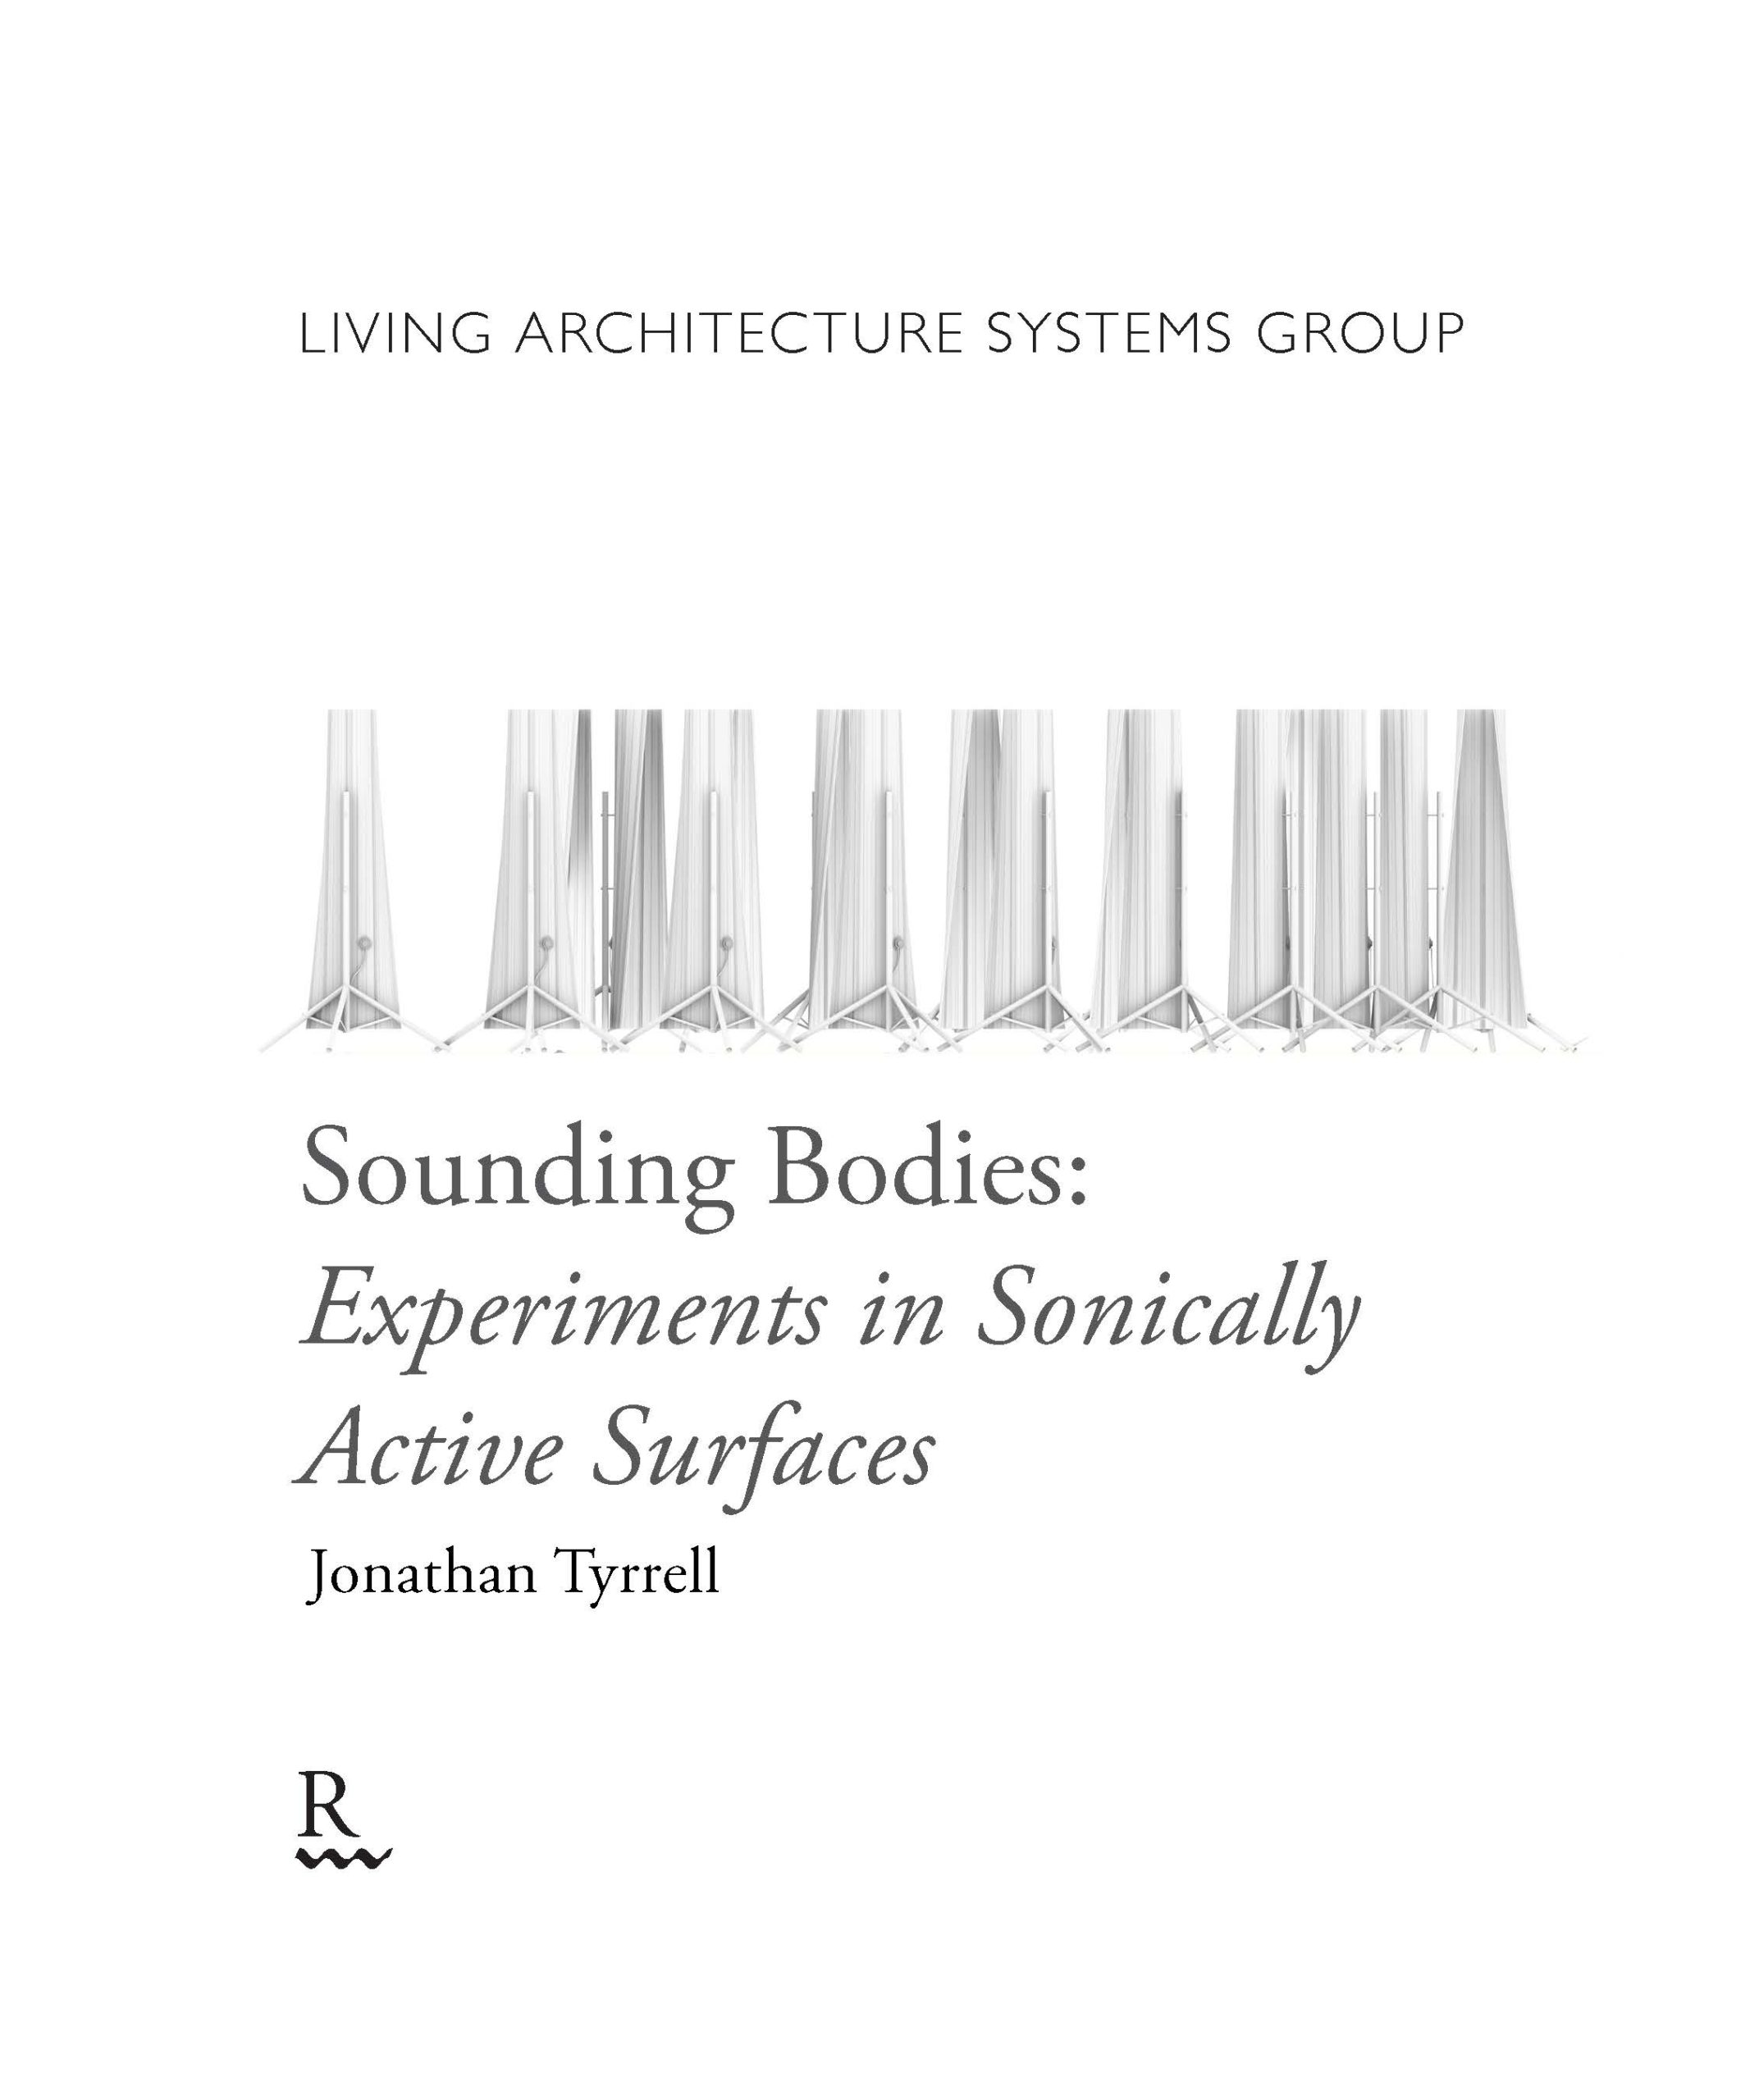 image of Sounding Bodies cover